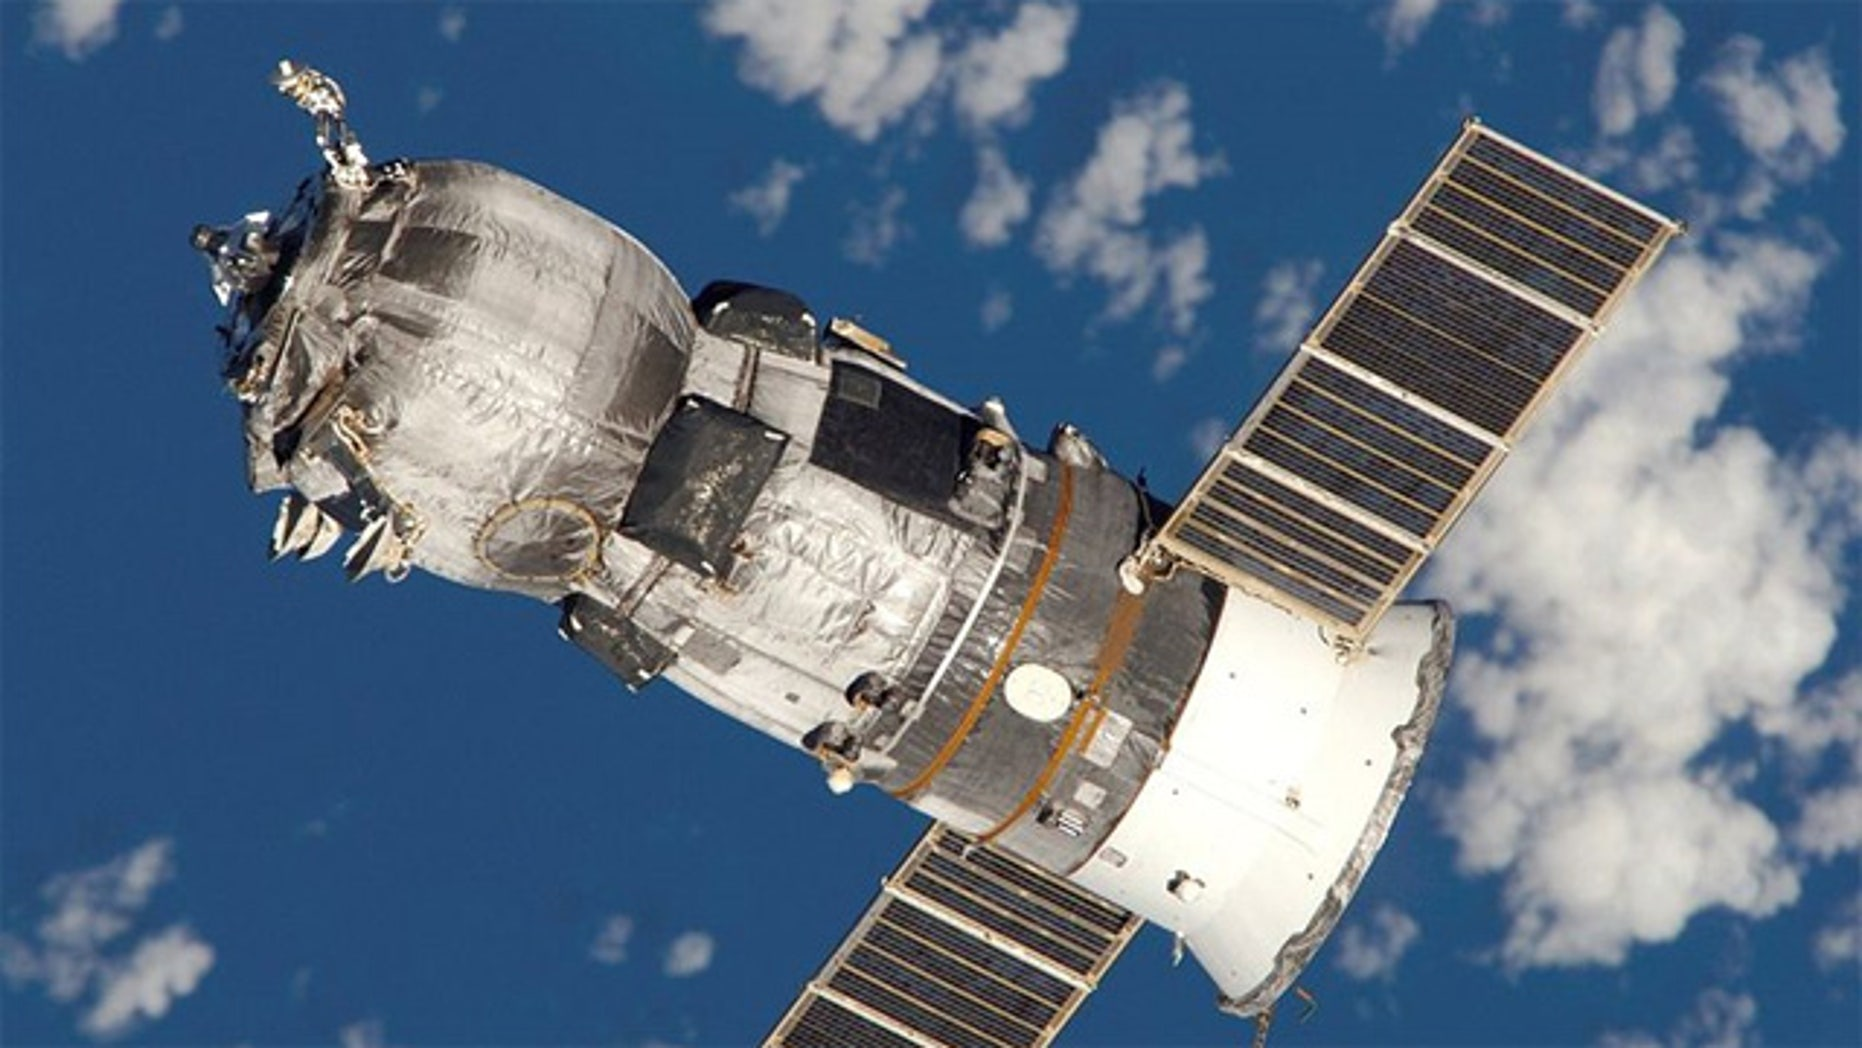 The Progress is a Russian expendable freighter spacecraft used to supply the International Space Station.